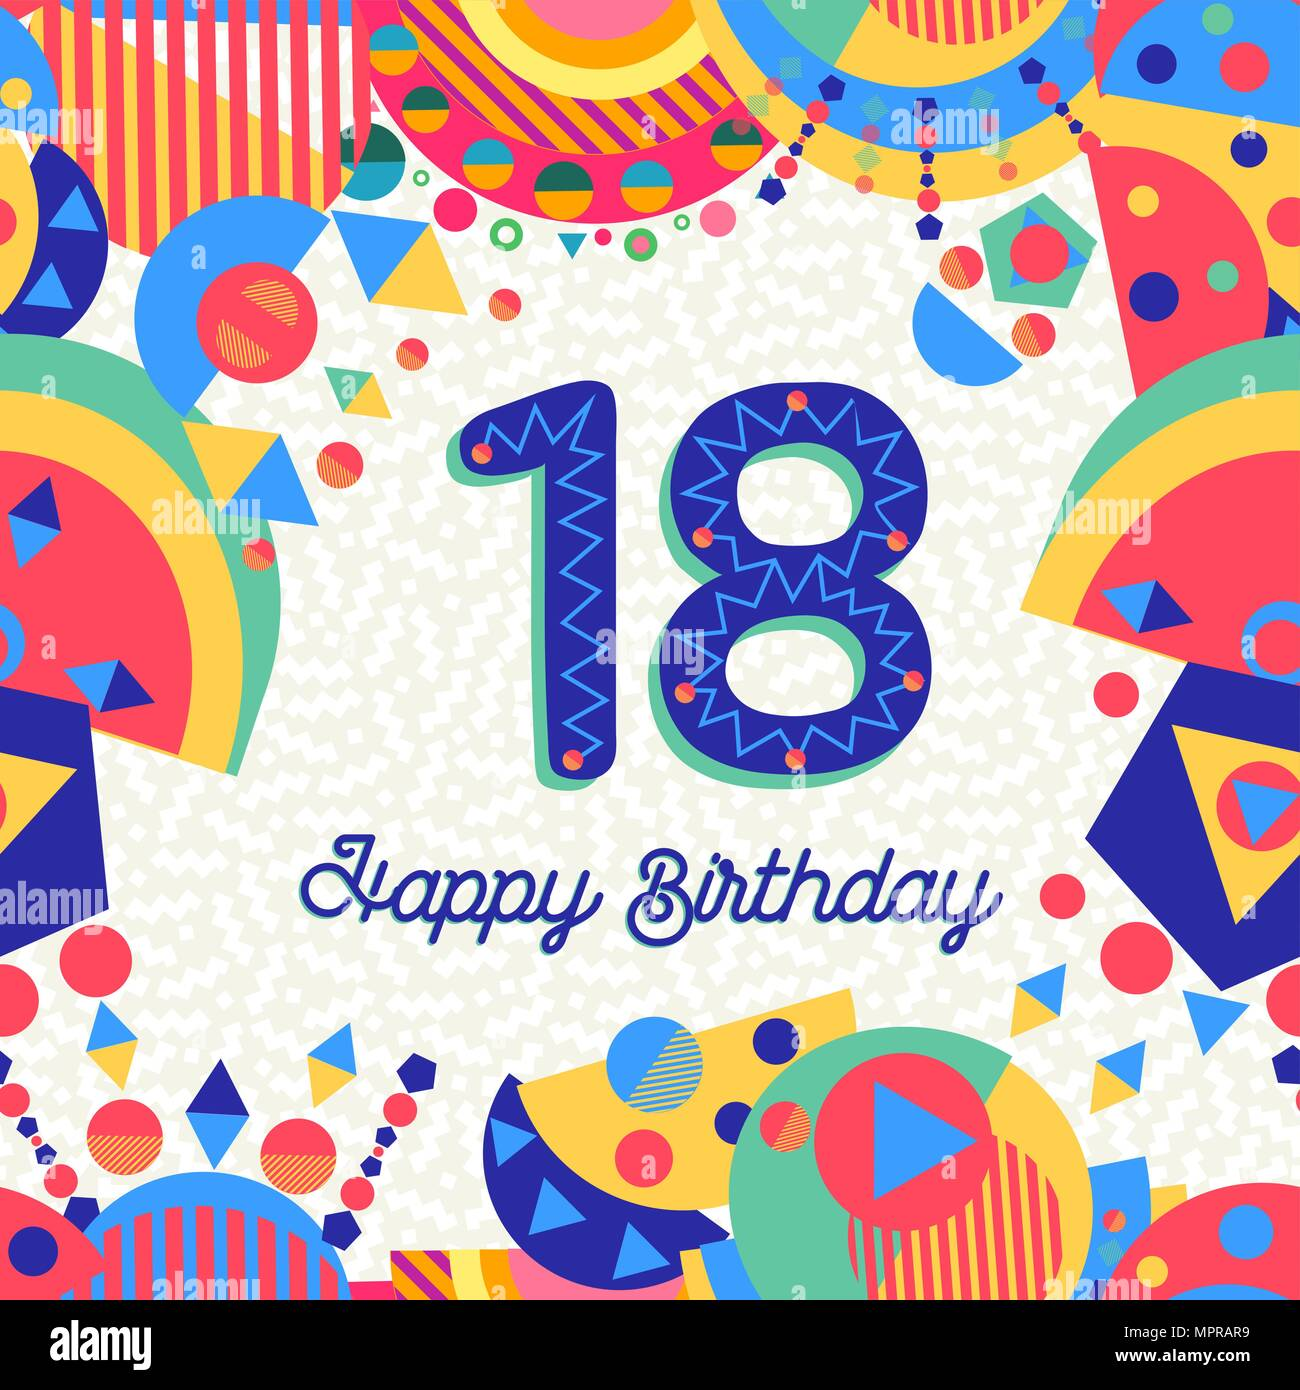 18th birthday card photos 18th birthday card images alamy. Black Bedroom Furniture Sets. Home Design Ideas